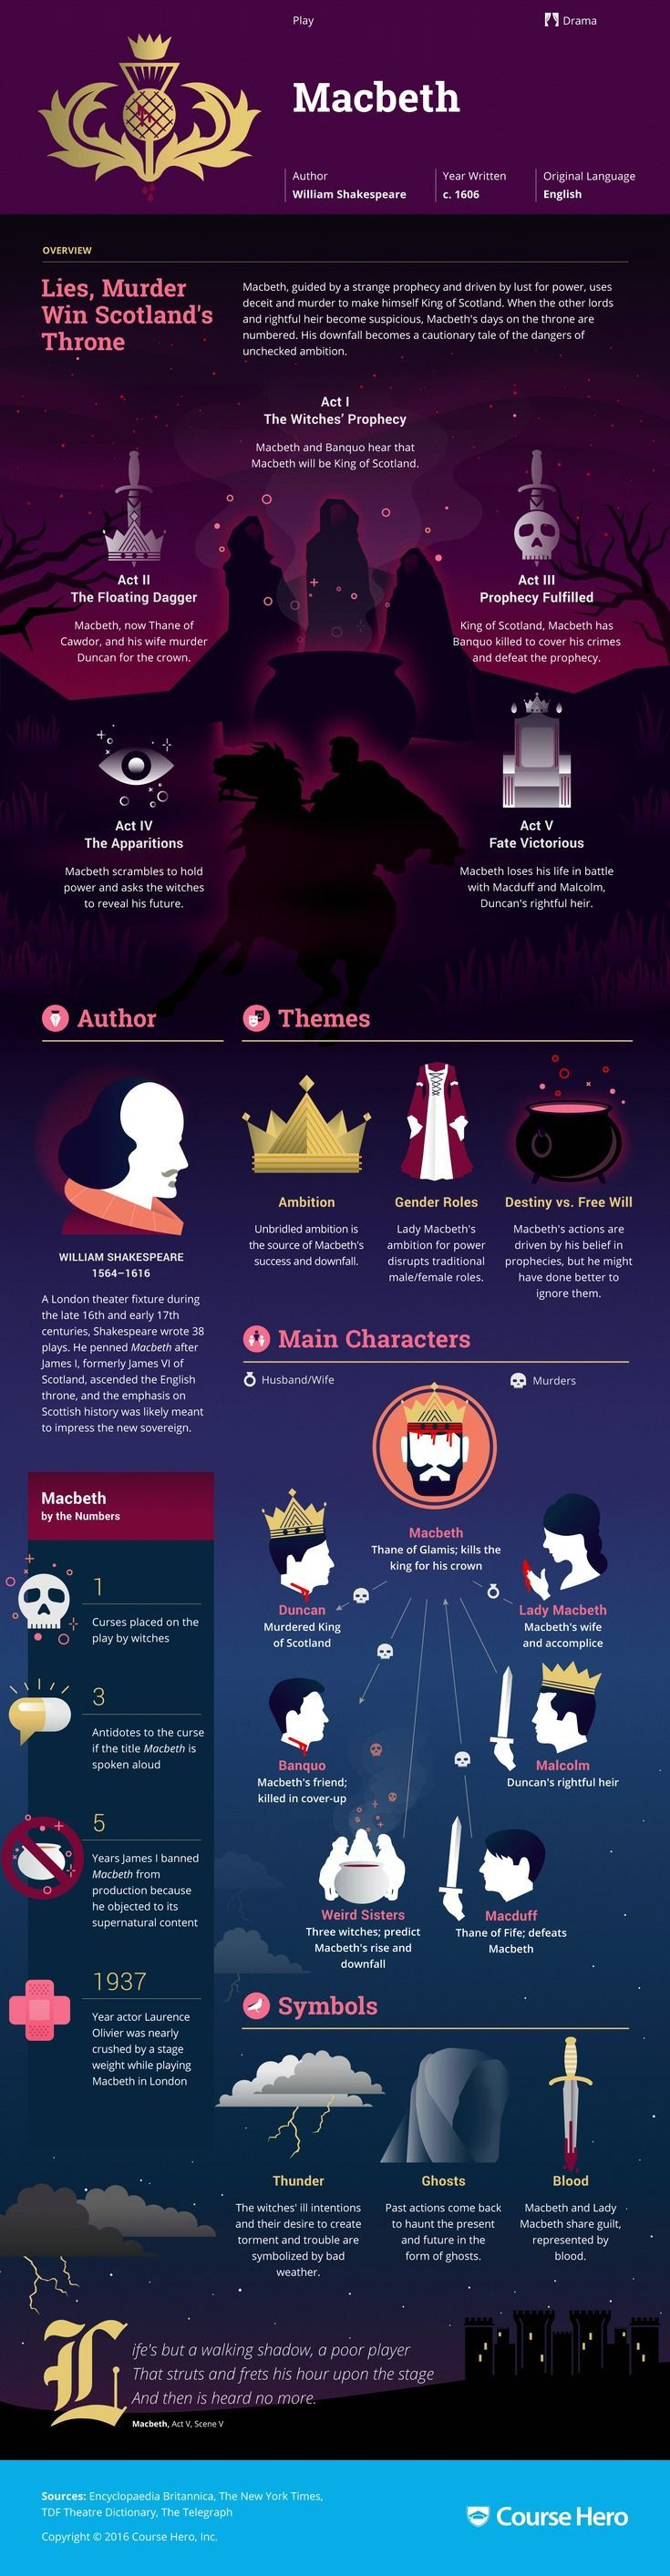 best ideas about macbeth summary macbeth themes study guide for william shakespeare s macbeth including scene summary character analysis and more learn all about macbeth ask questions and get the